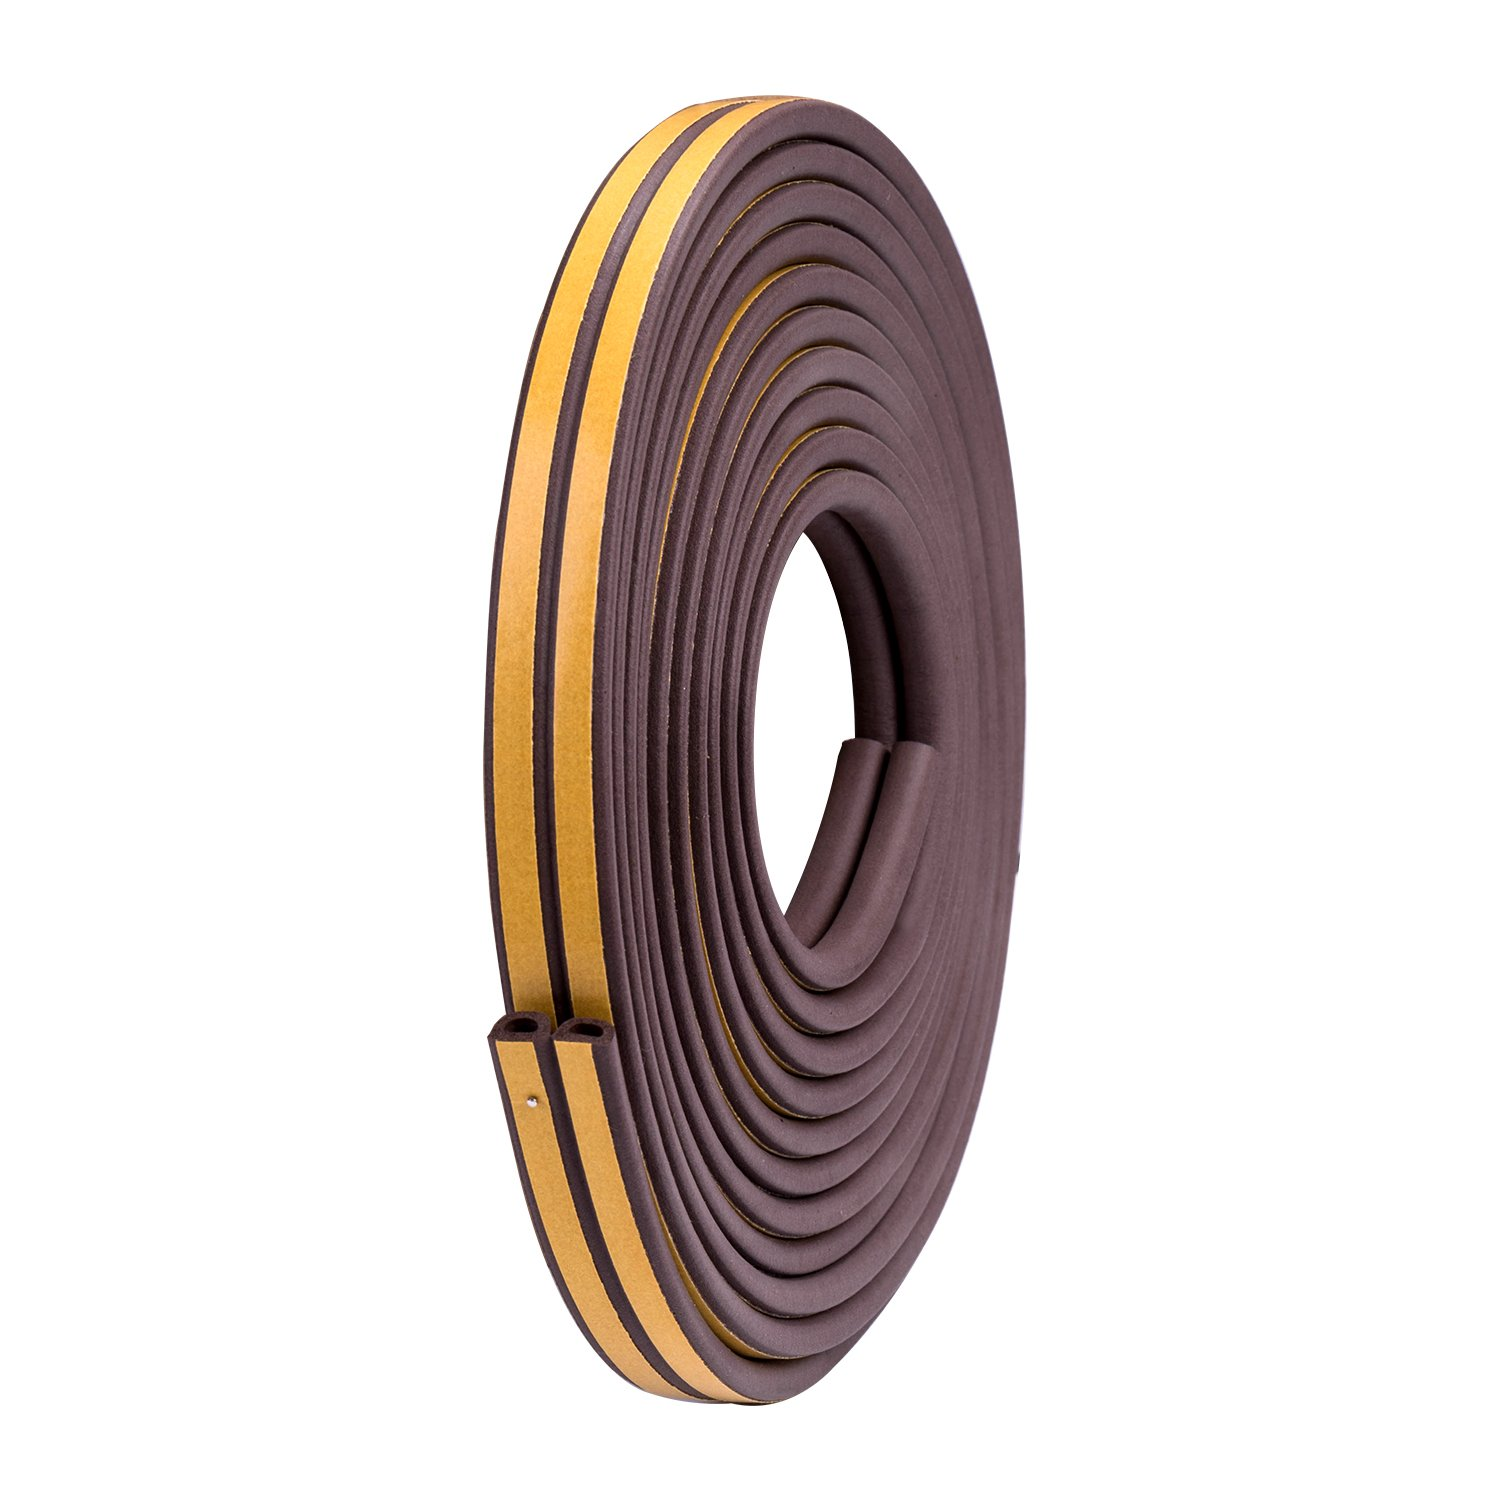 """Stop Now Heavy-Duty Self Adhesive Rubber Weatherstrip Seal for Door window Anti-collision, 3/8-Inch x 1/4-Inch(D), 3/8-Inch x 5/32""""(E), 16.5-Feet, 4 Seals (D)"""